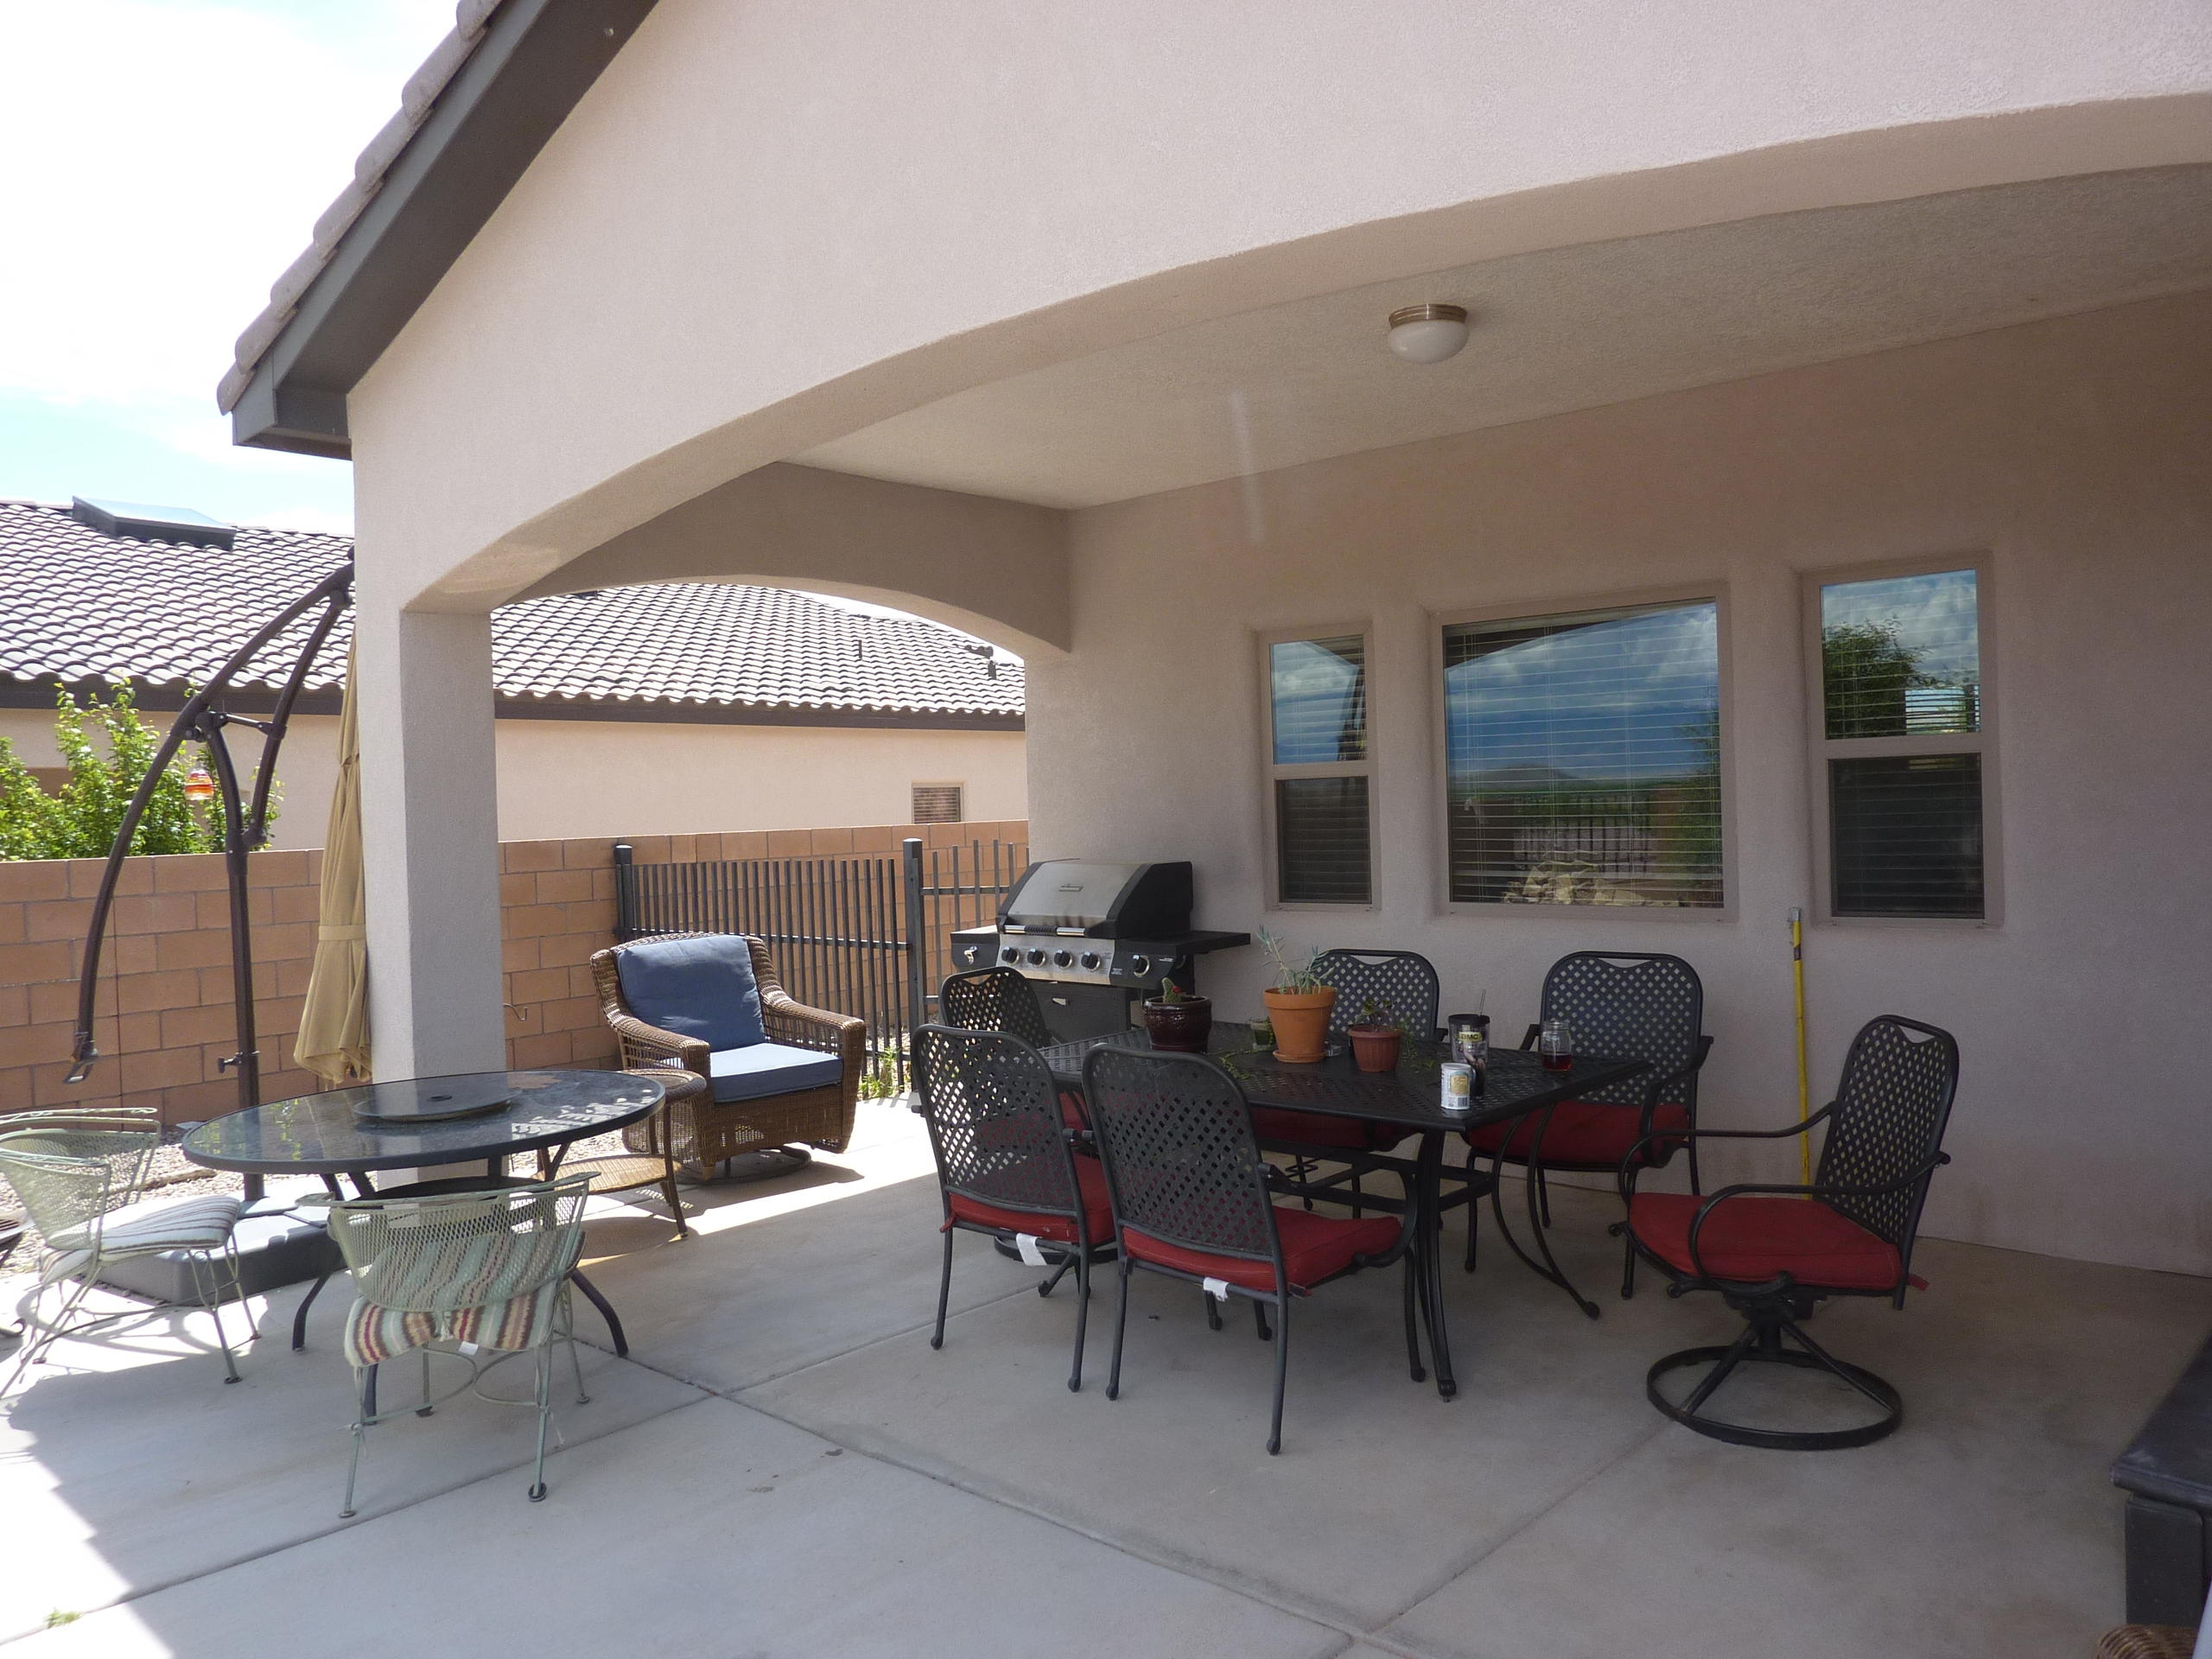 Covered Patio Faces East